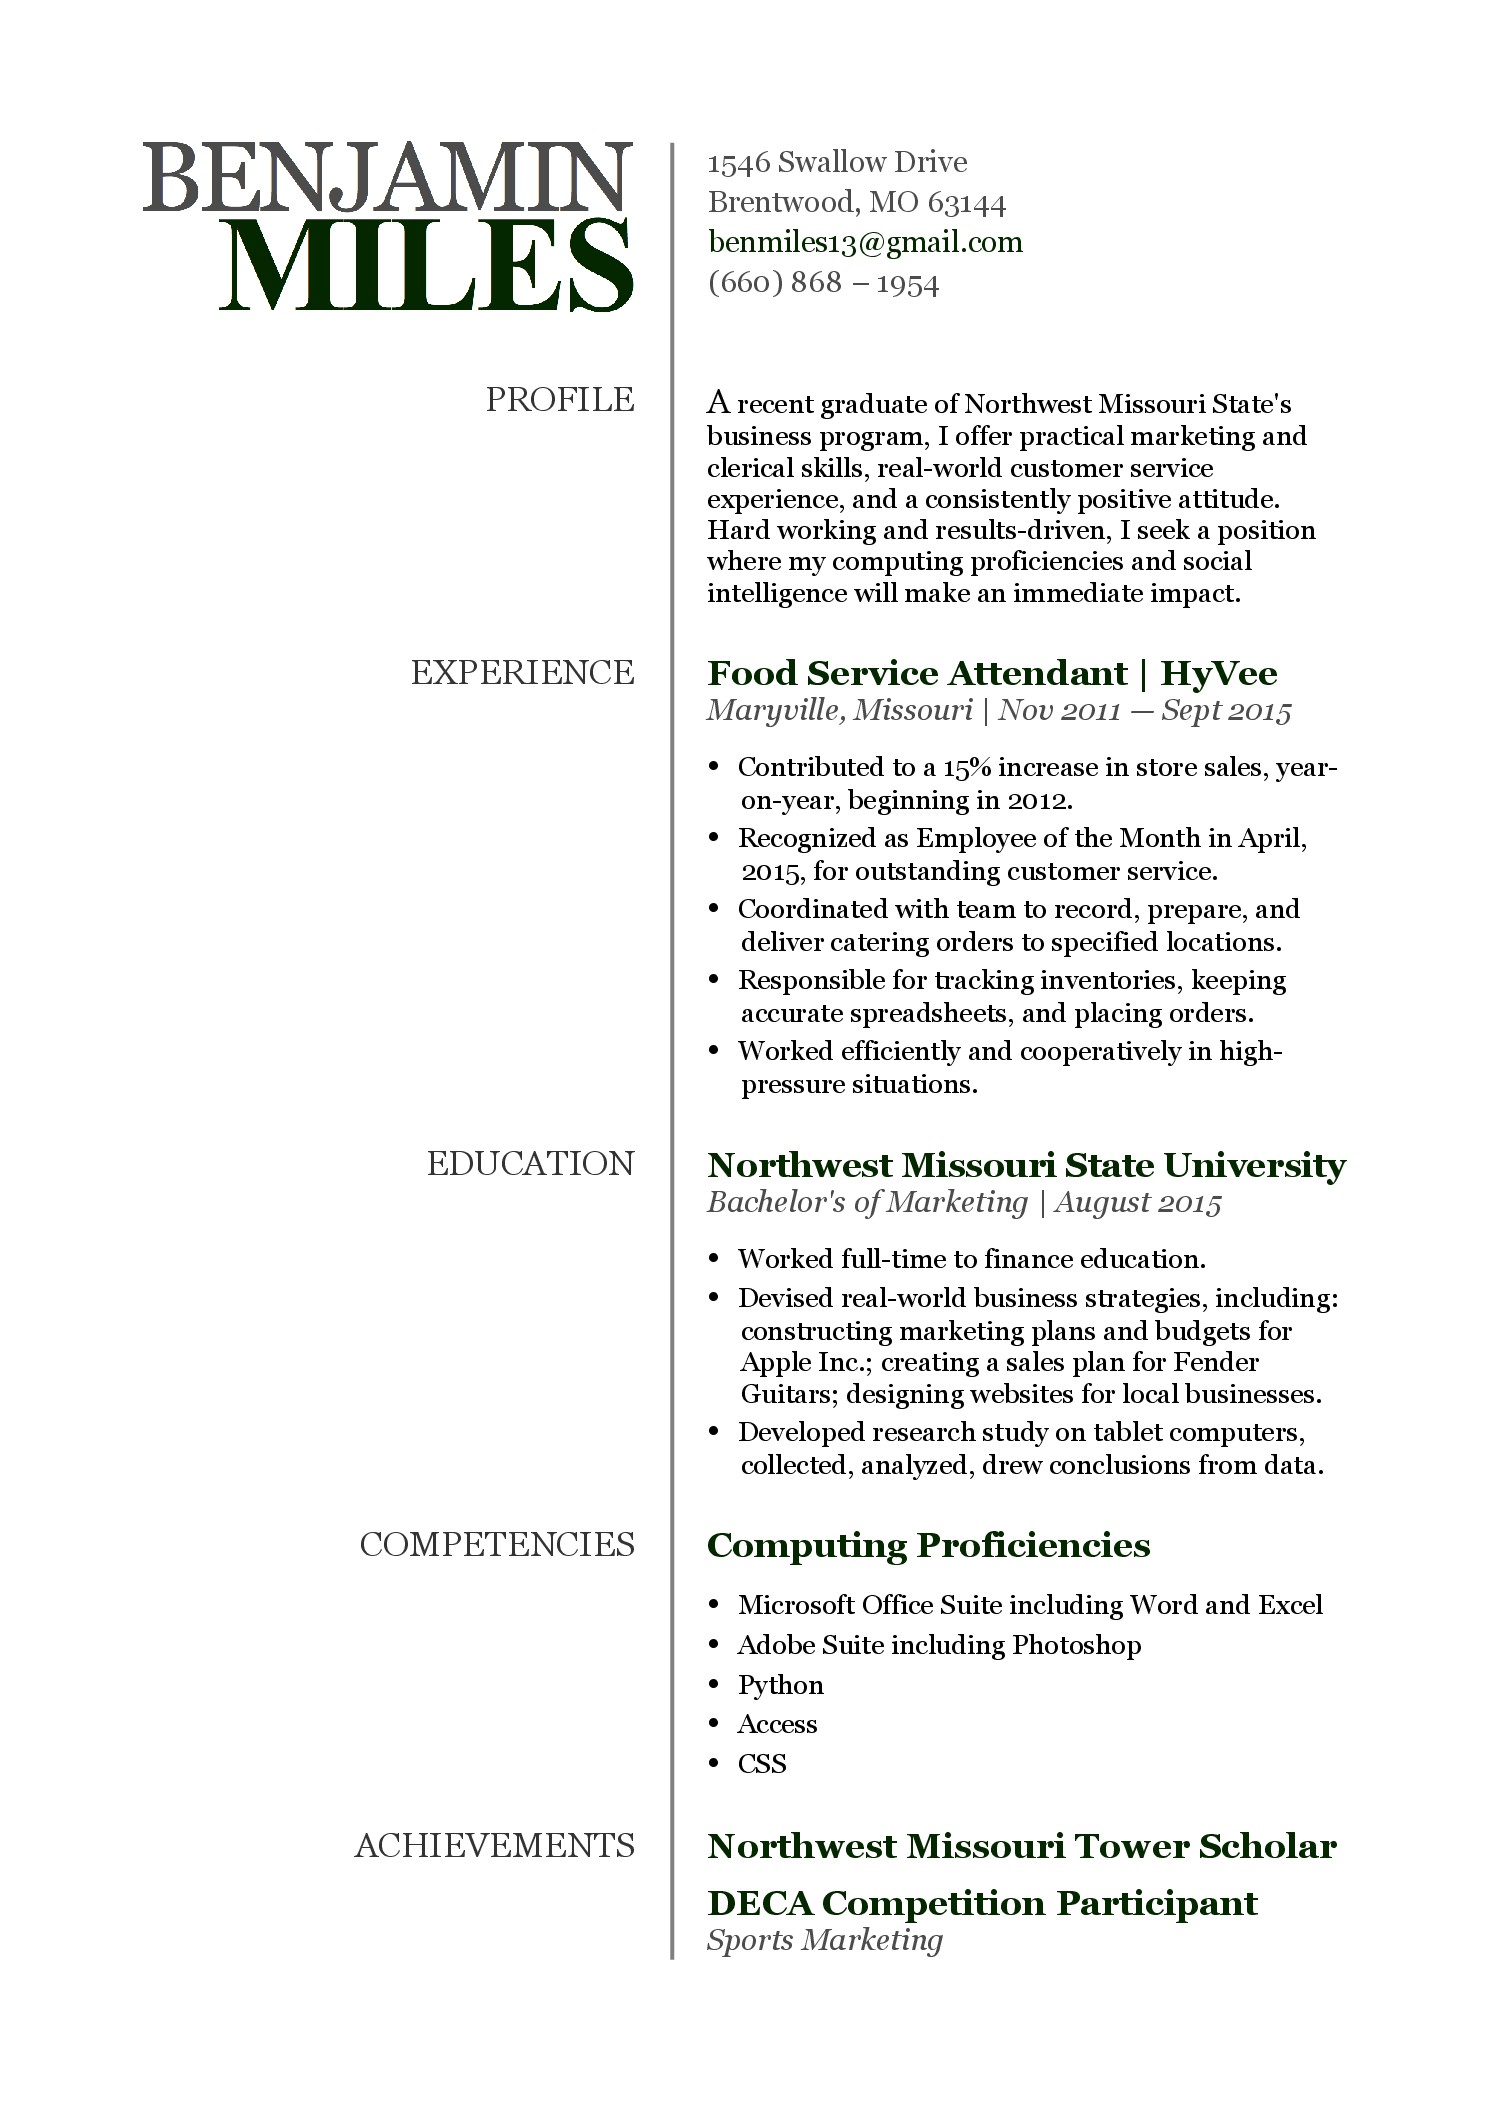 resume lance writer examples lance writer editor resume samples visualcv resume samples visualcv modern professional resume